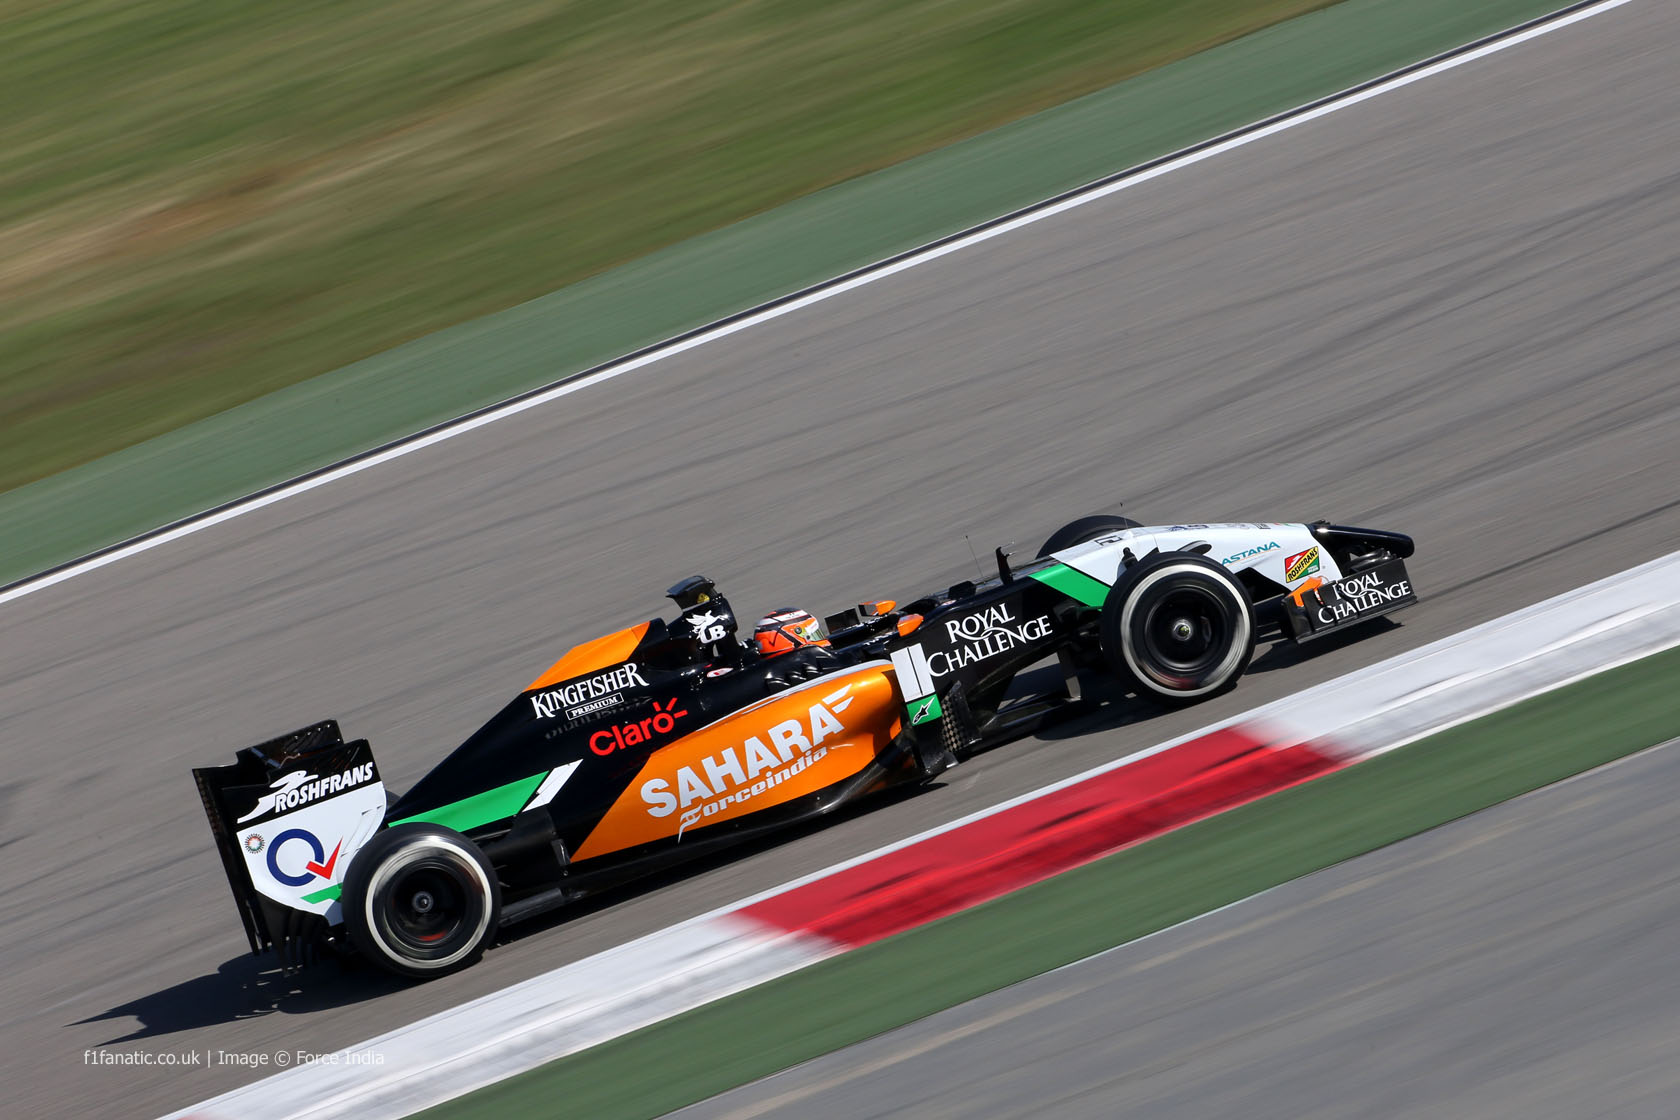 Nico Hulkenberg, Force India, Bahrain, 2014